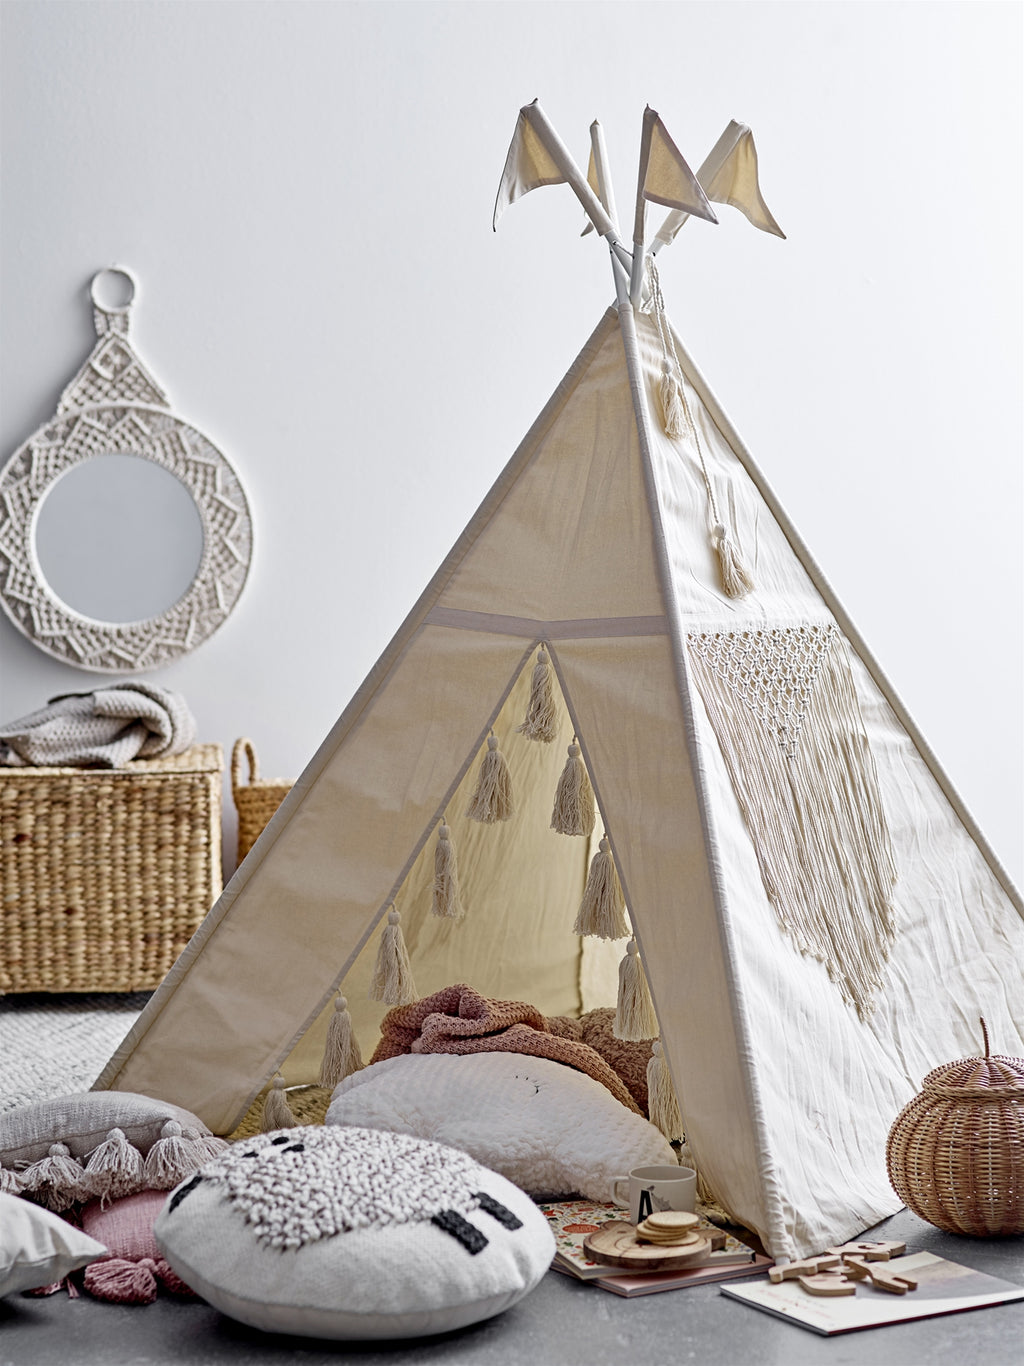 Ecru Cotton Kids Teepee , come on let's hang out!